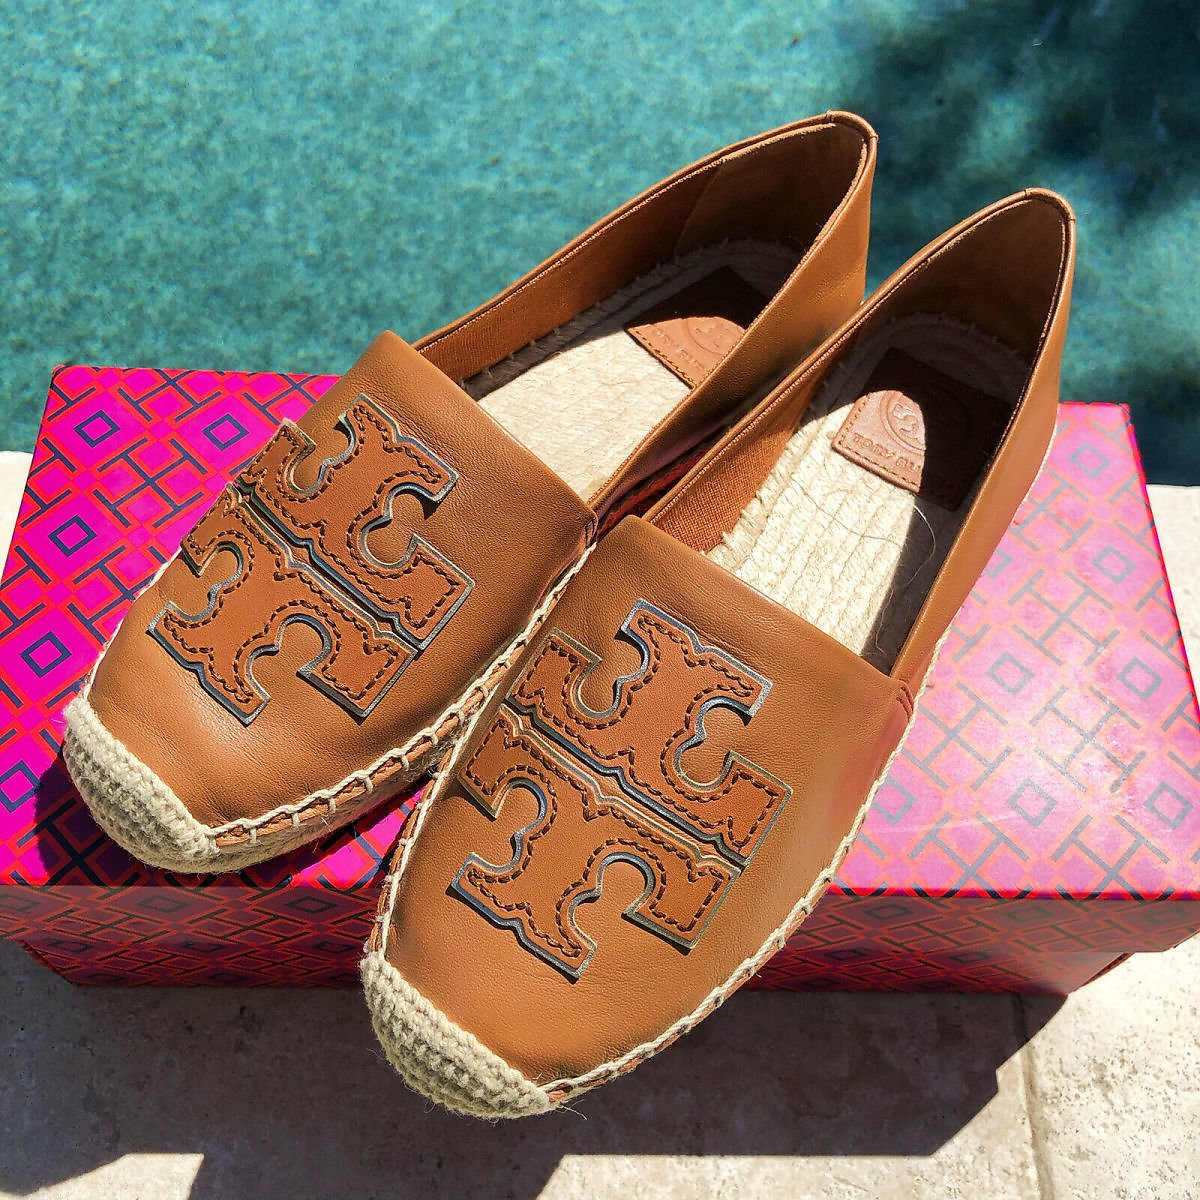 Up To 70% Off Tory Burch Shoes Sale